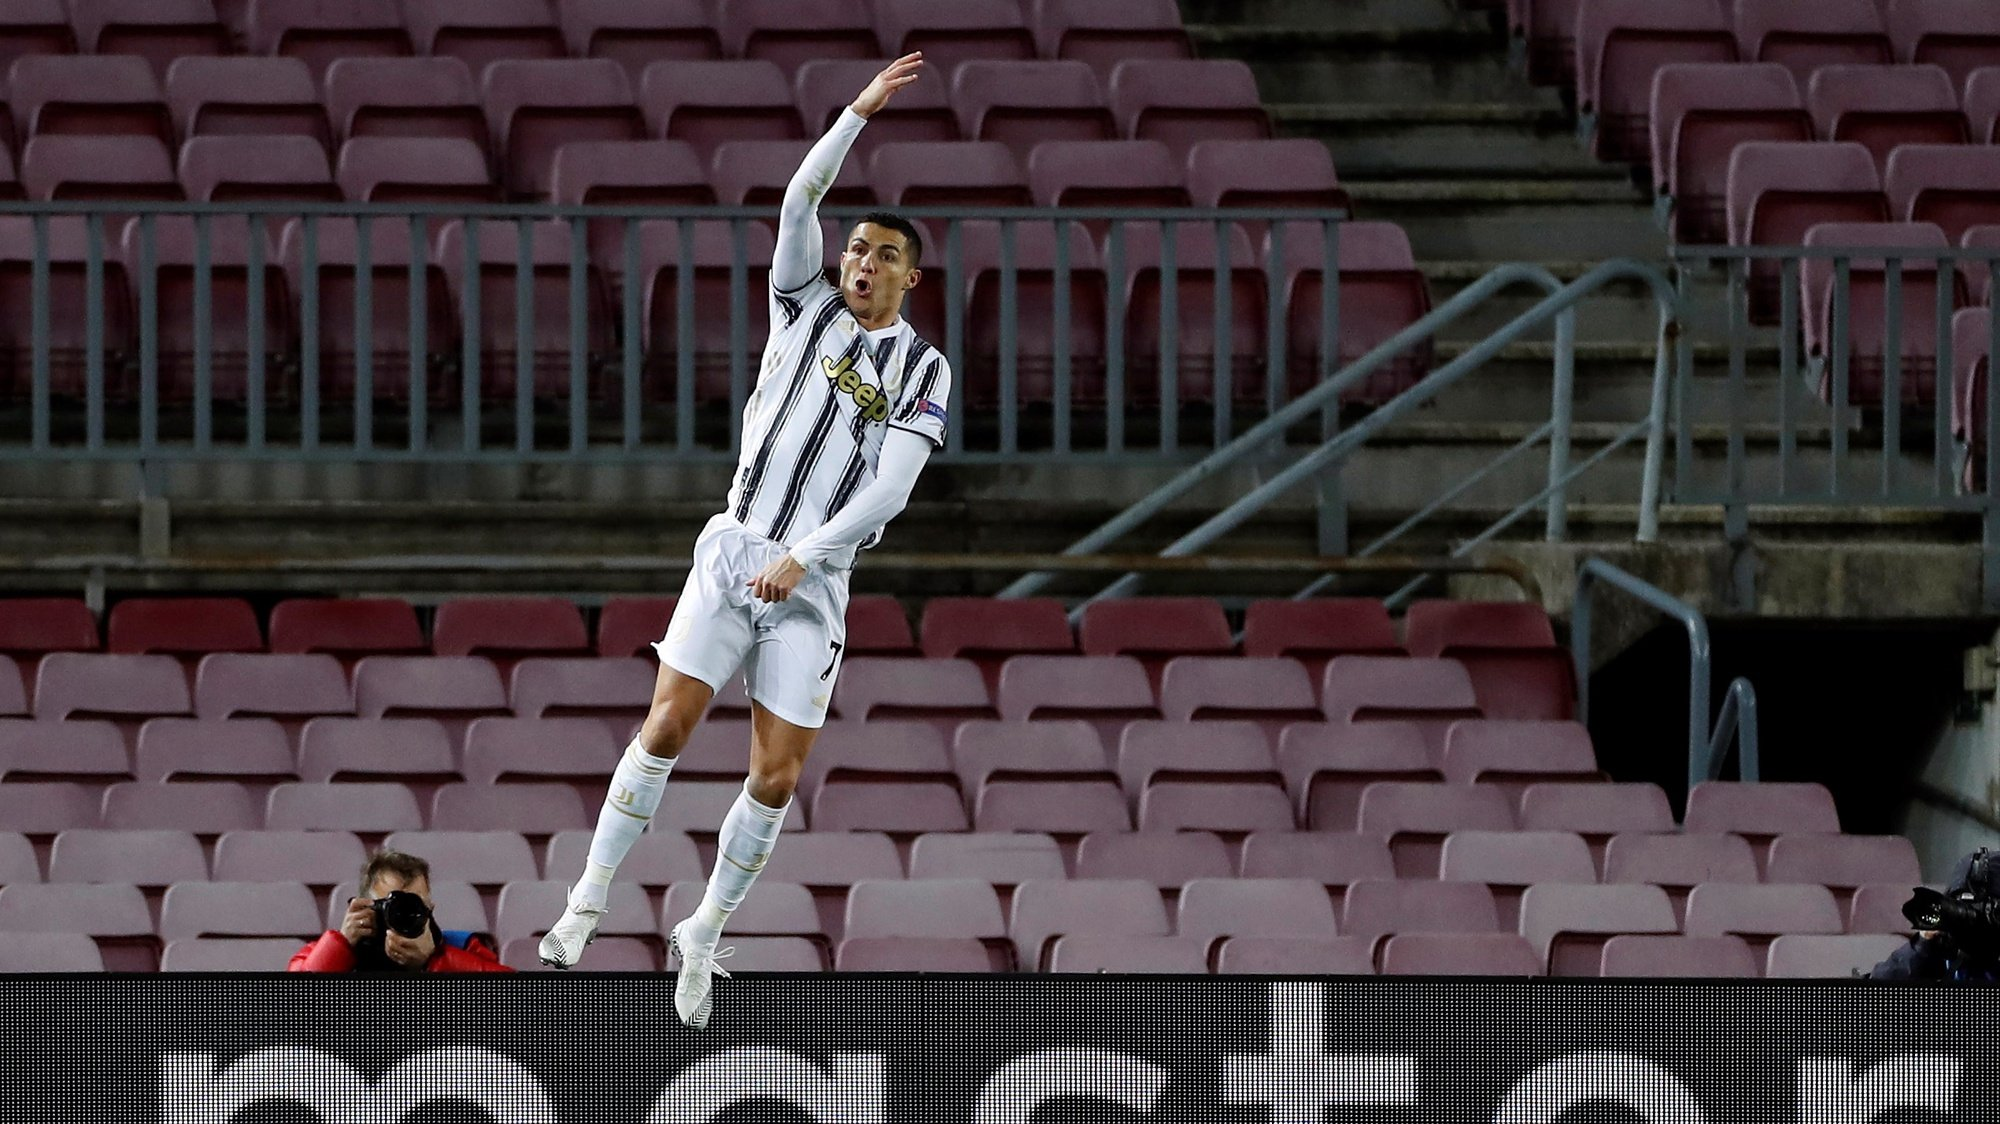 epa08871496 Juventus' striker Cristiano Ronaldo celebrates after scoring the 0-3 from the penalty during the UEFA Champions League group G between FC Barcelona and Juventus at Camp Nou stadium in Barcelona, Catalonia, Spain, 08 December 2020.  EPA/Alberto Estevez